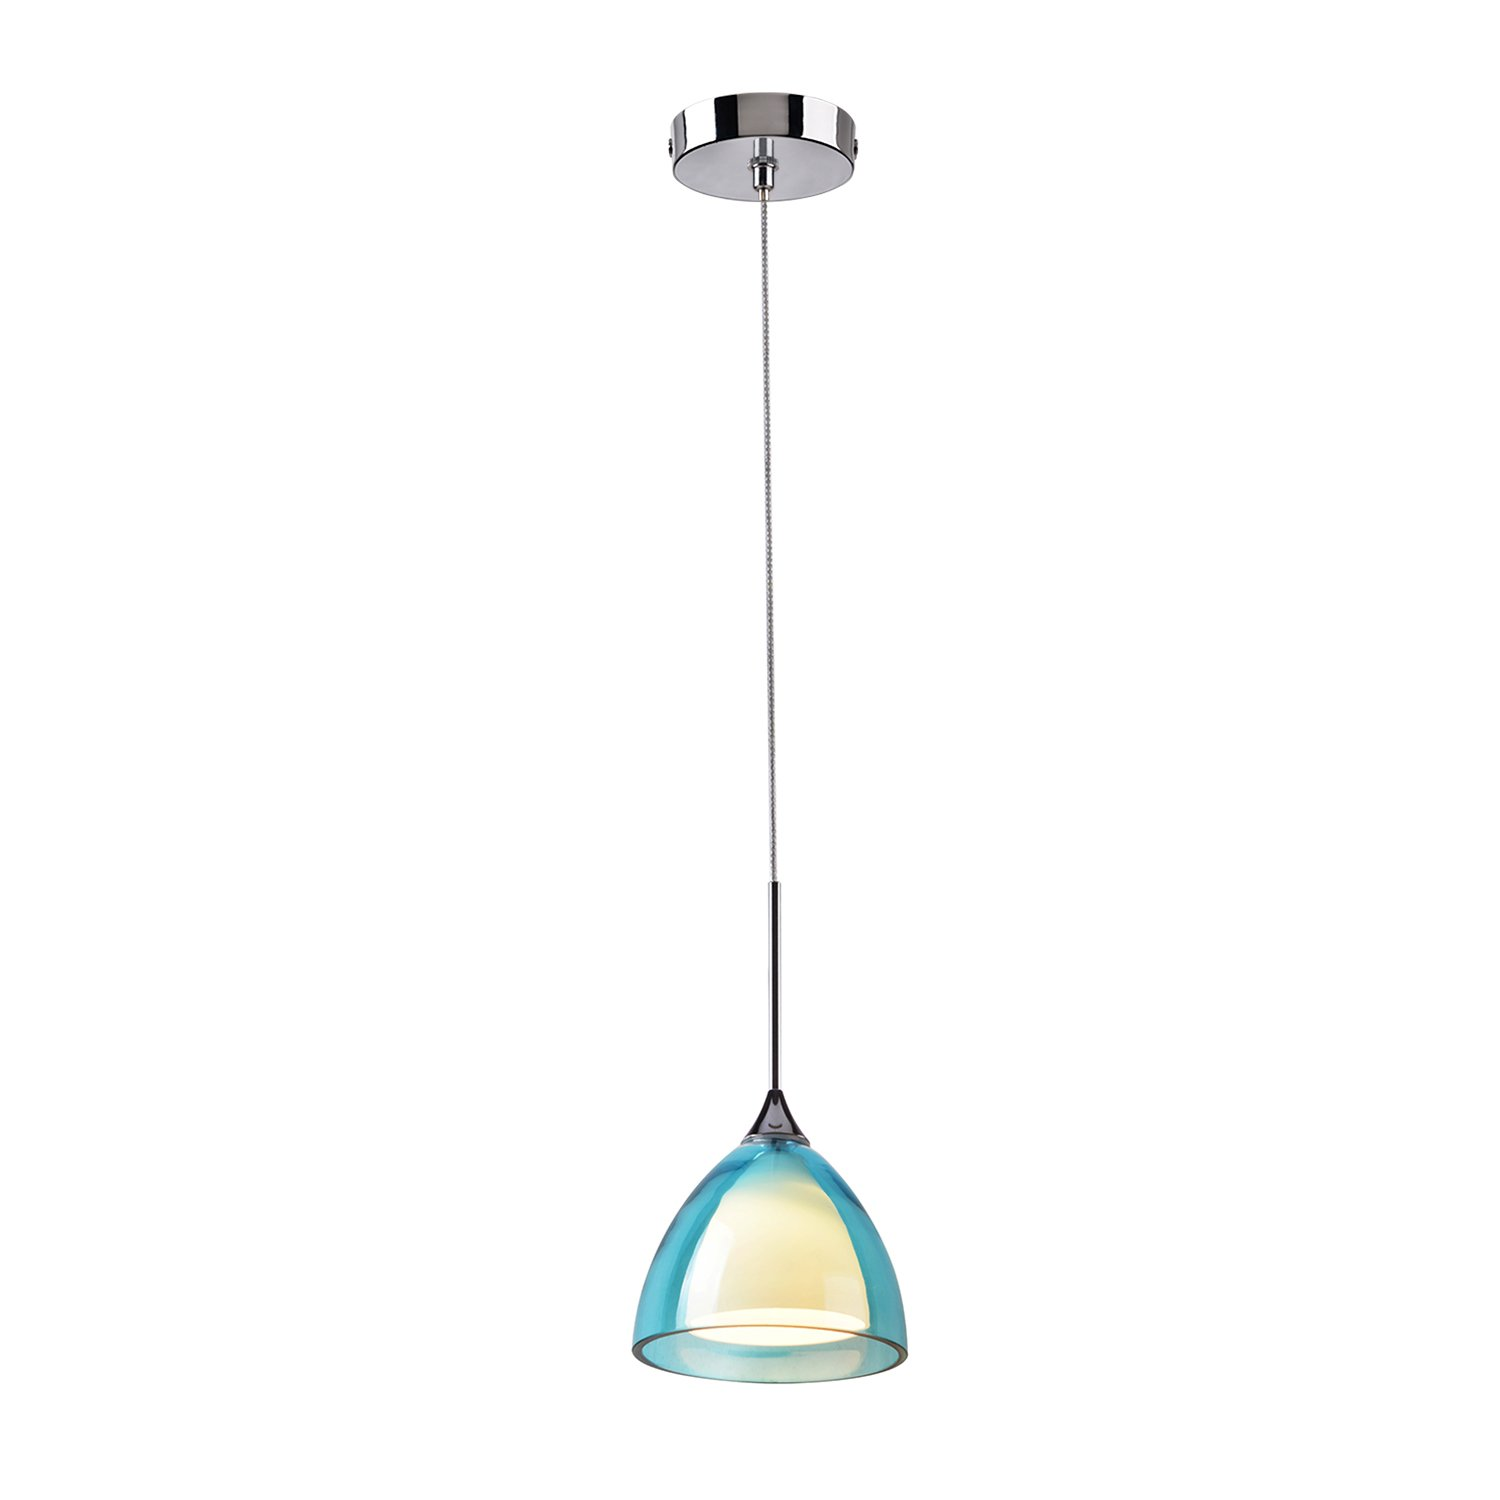 Cheap pendant light kitchen island find pendant light kitchen